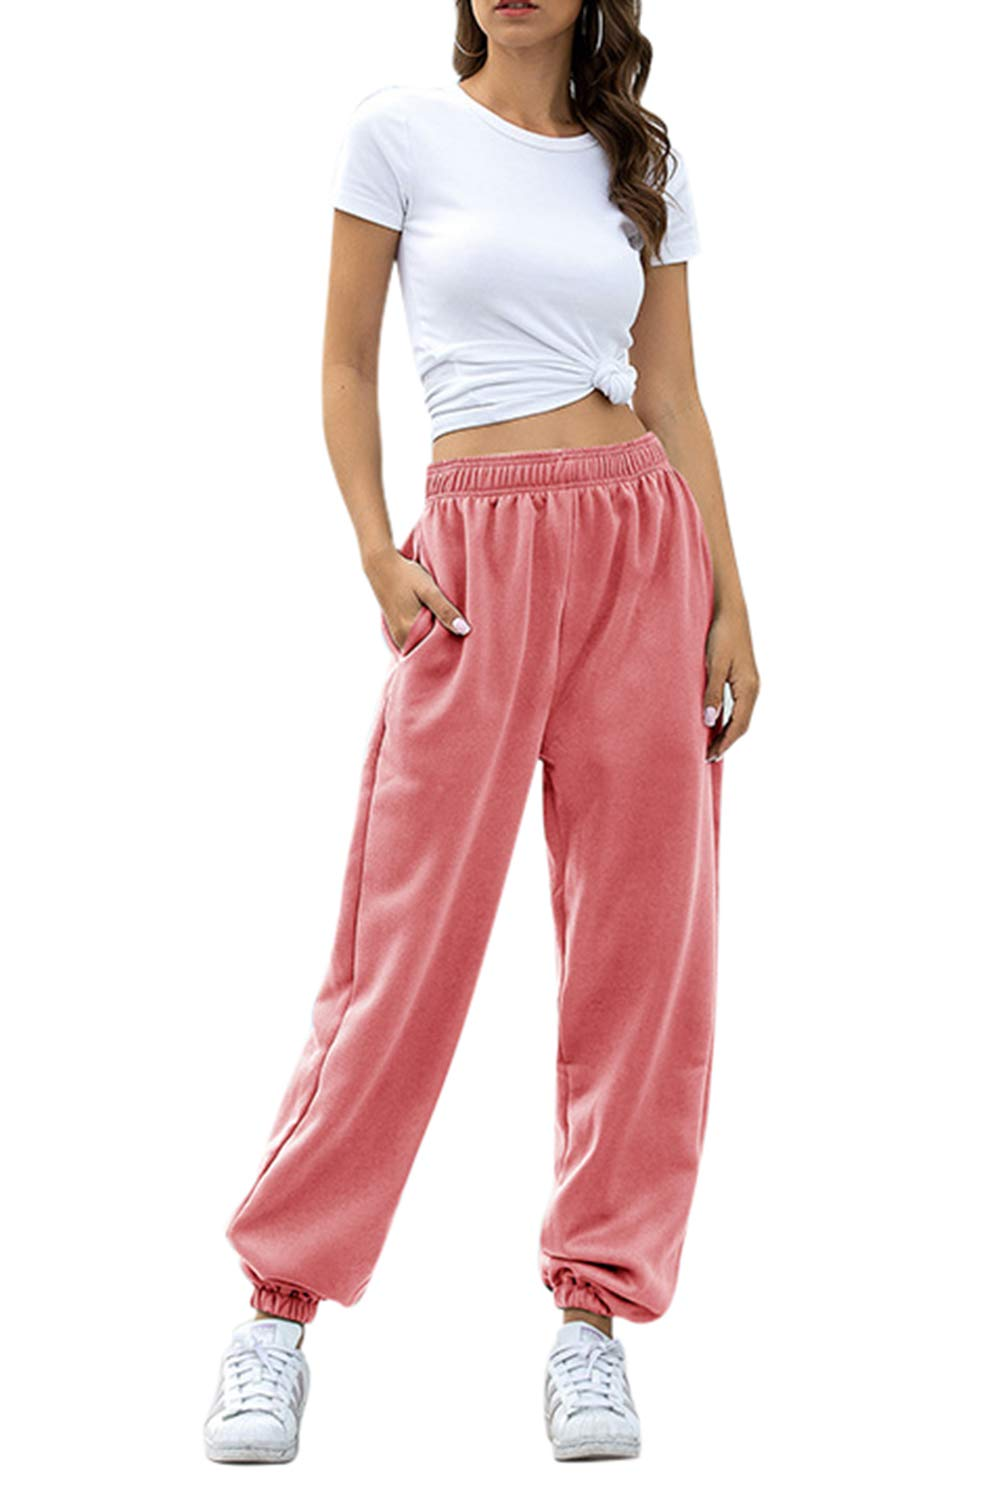 Pink Wind Women's Workout Joggers Sweatpants High Waisted Lounge Pants with Pockets